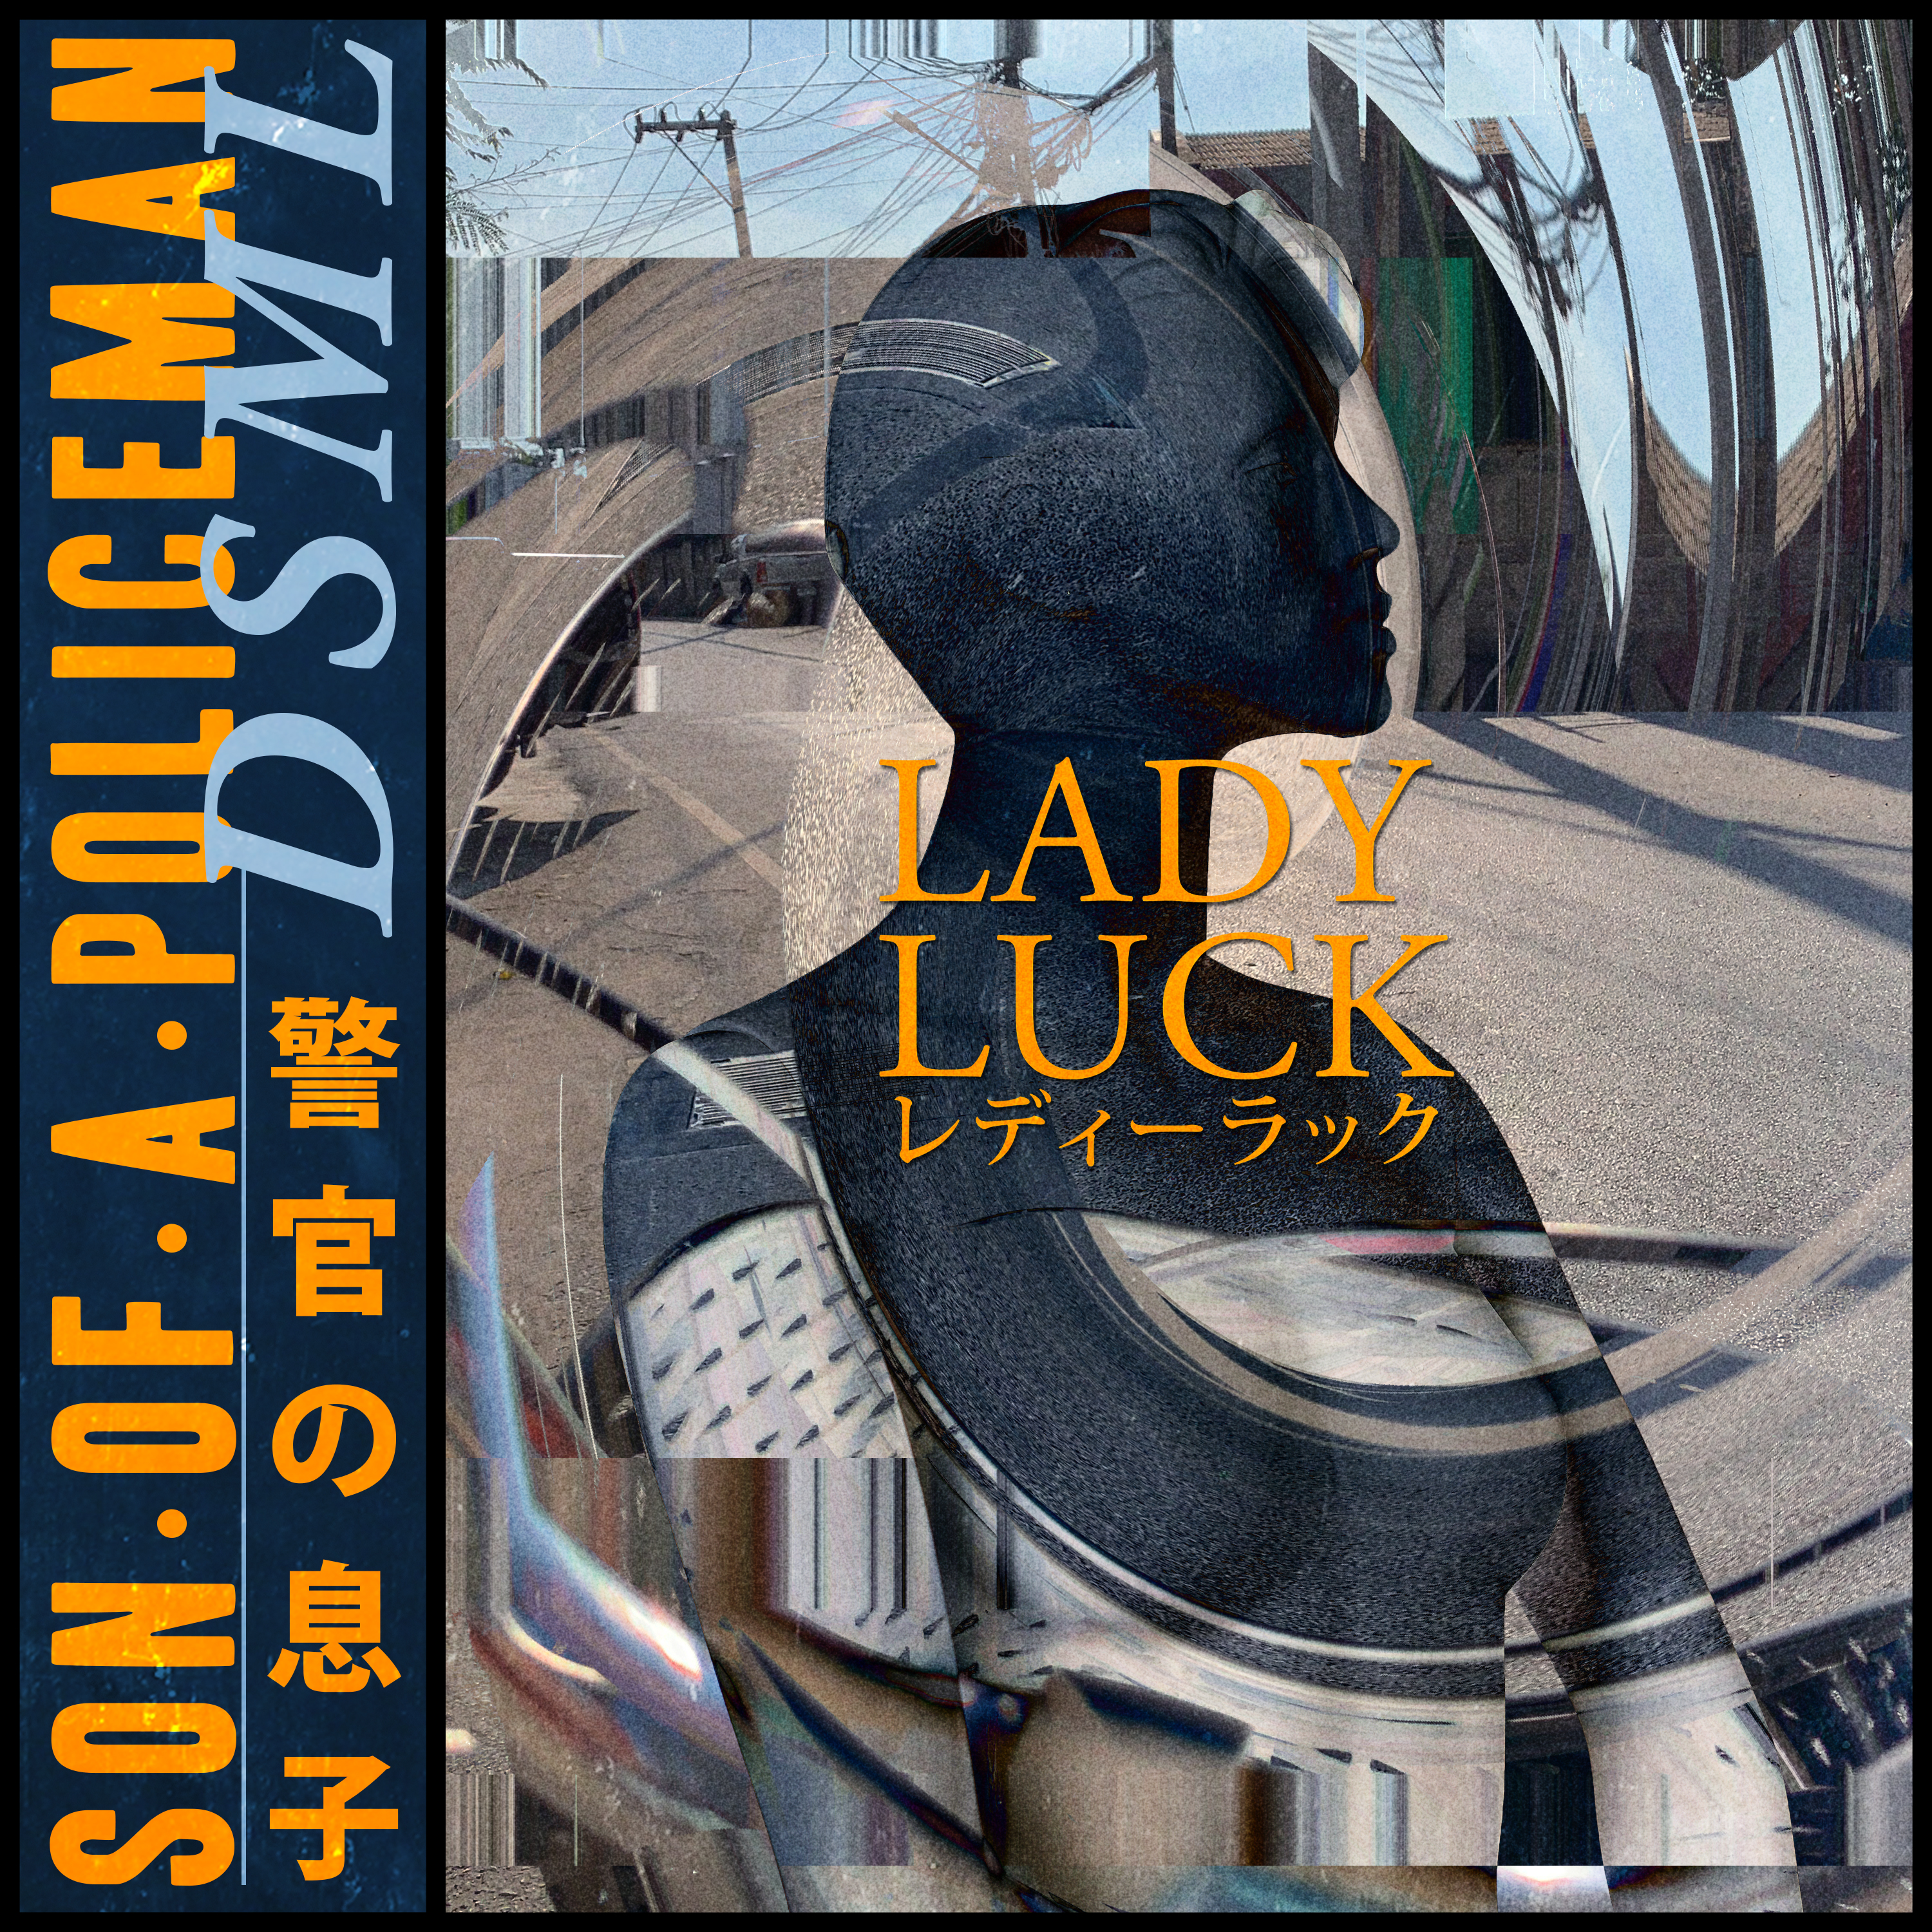 Lady luck %28single art%29